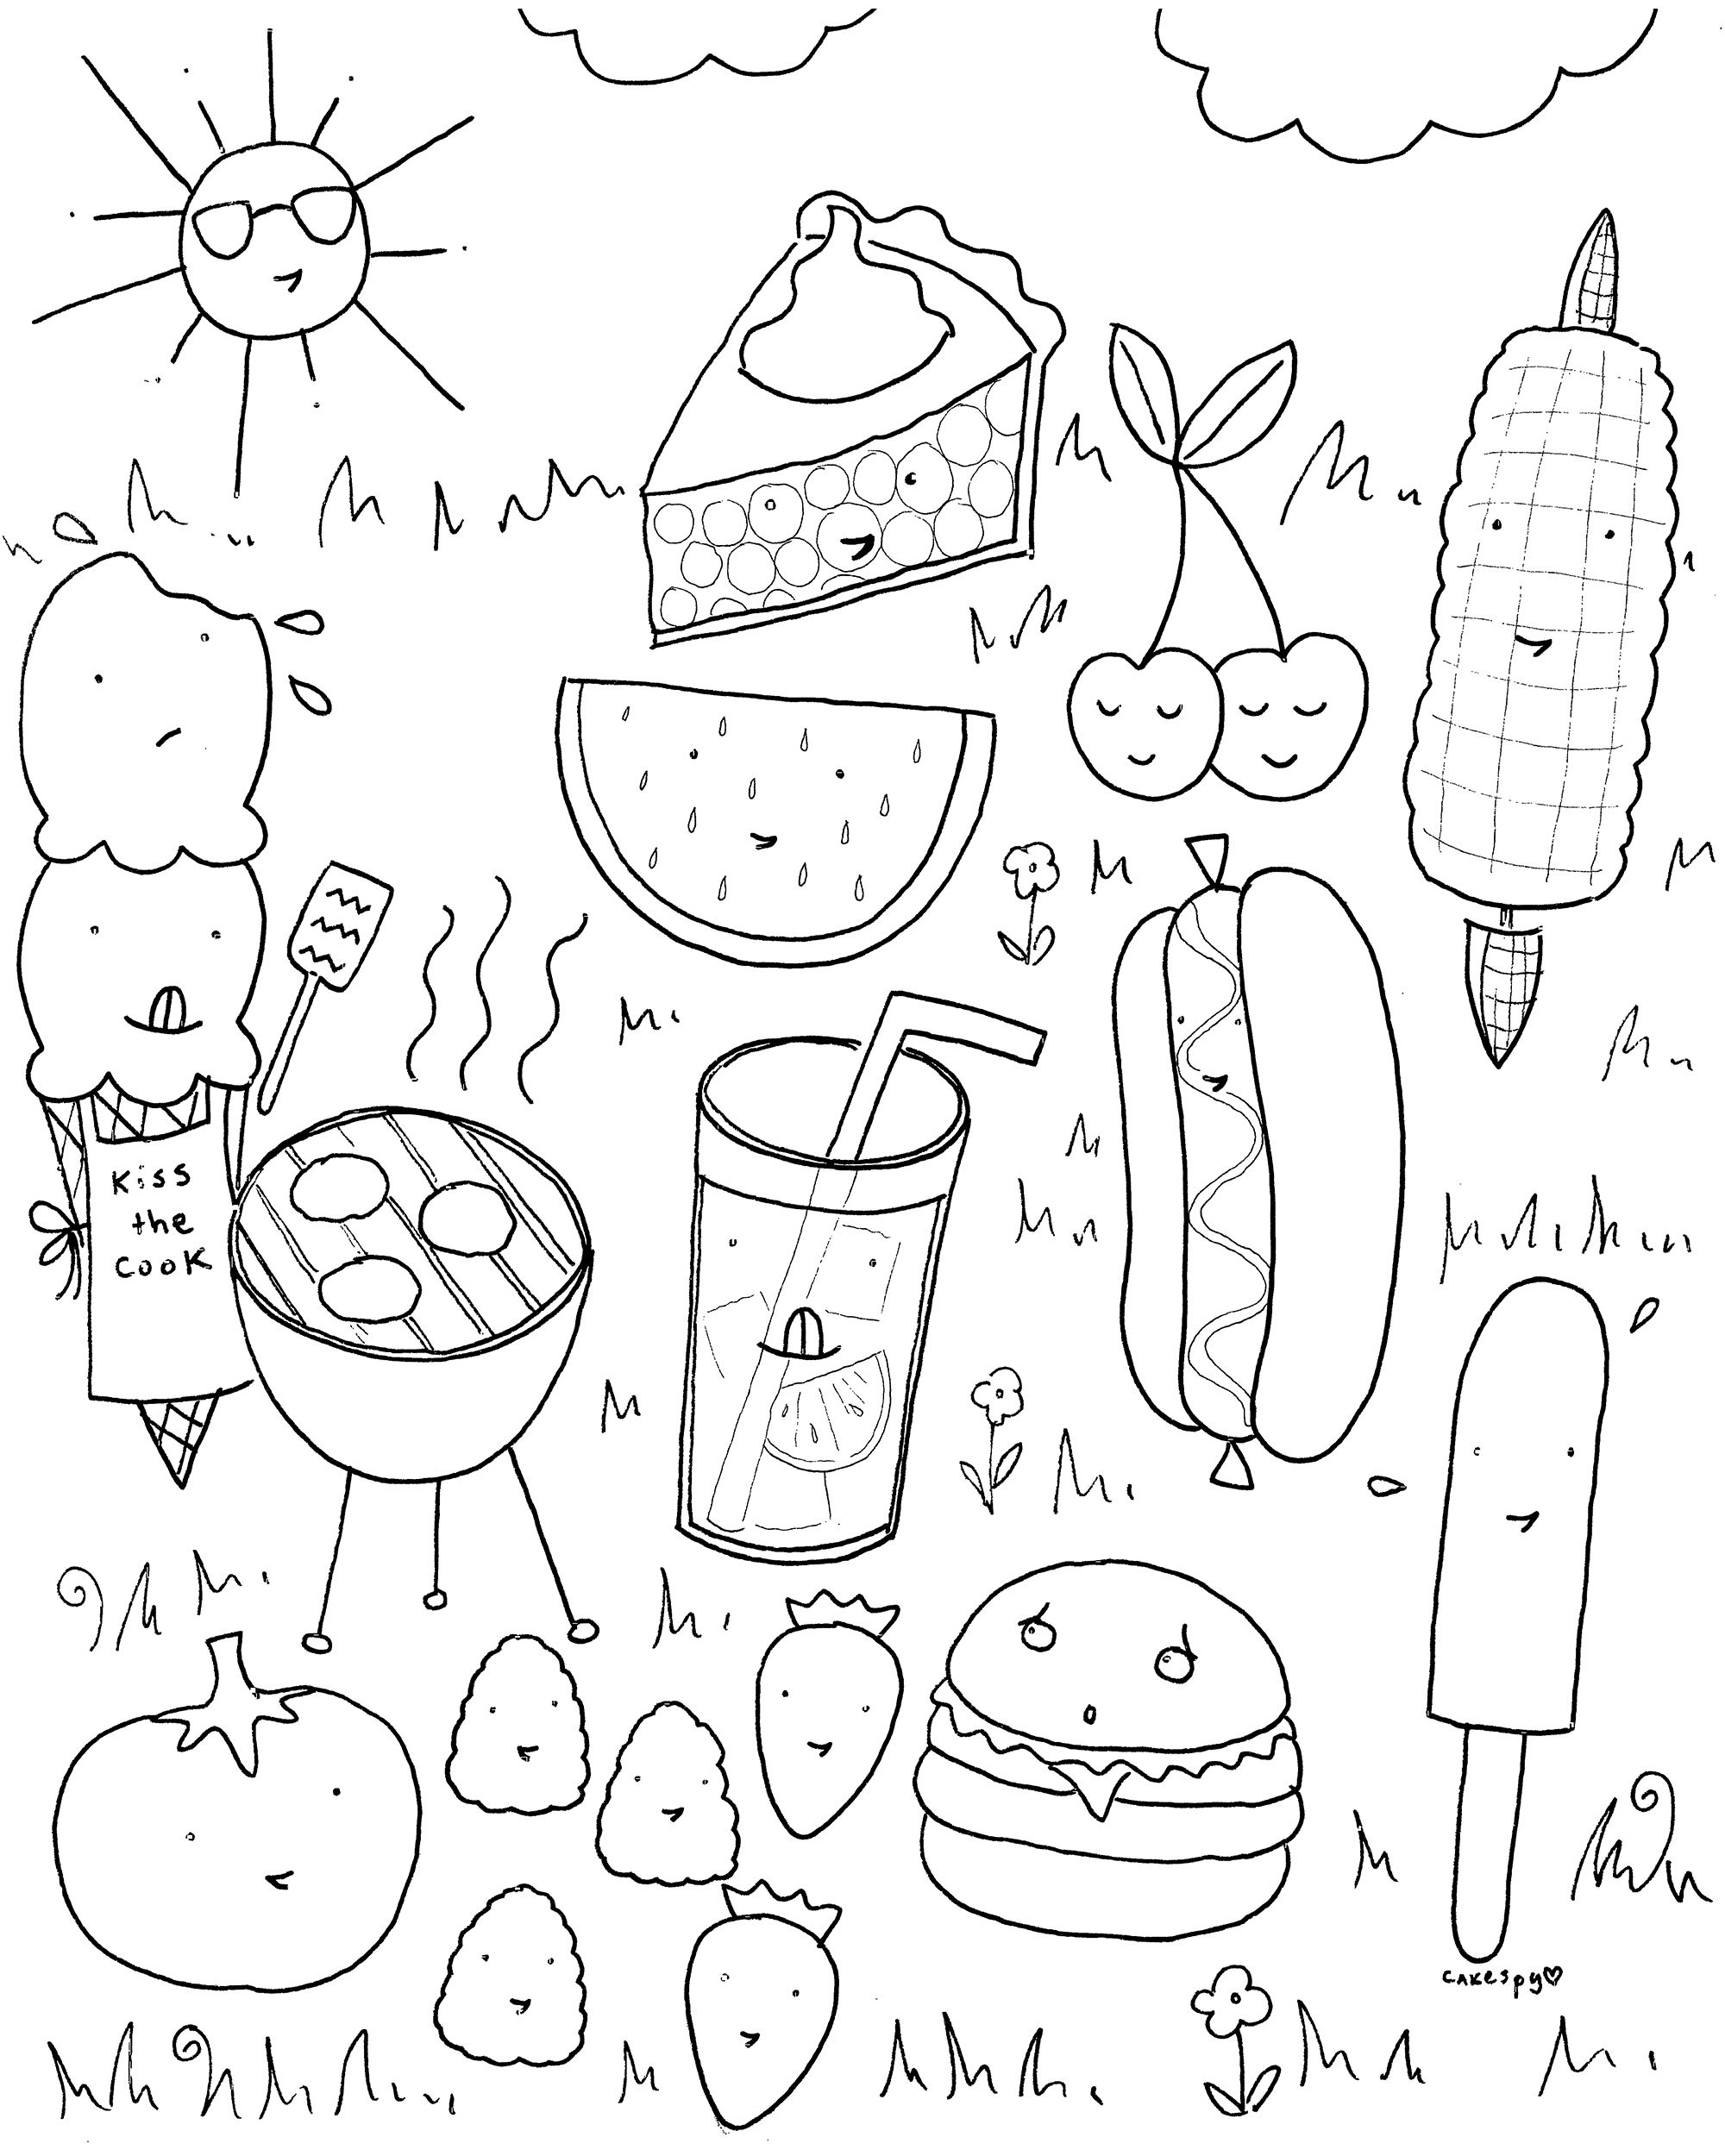 FREE Downloadable Summer Fun Coloring Book Pages | Ausmalbilder ...